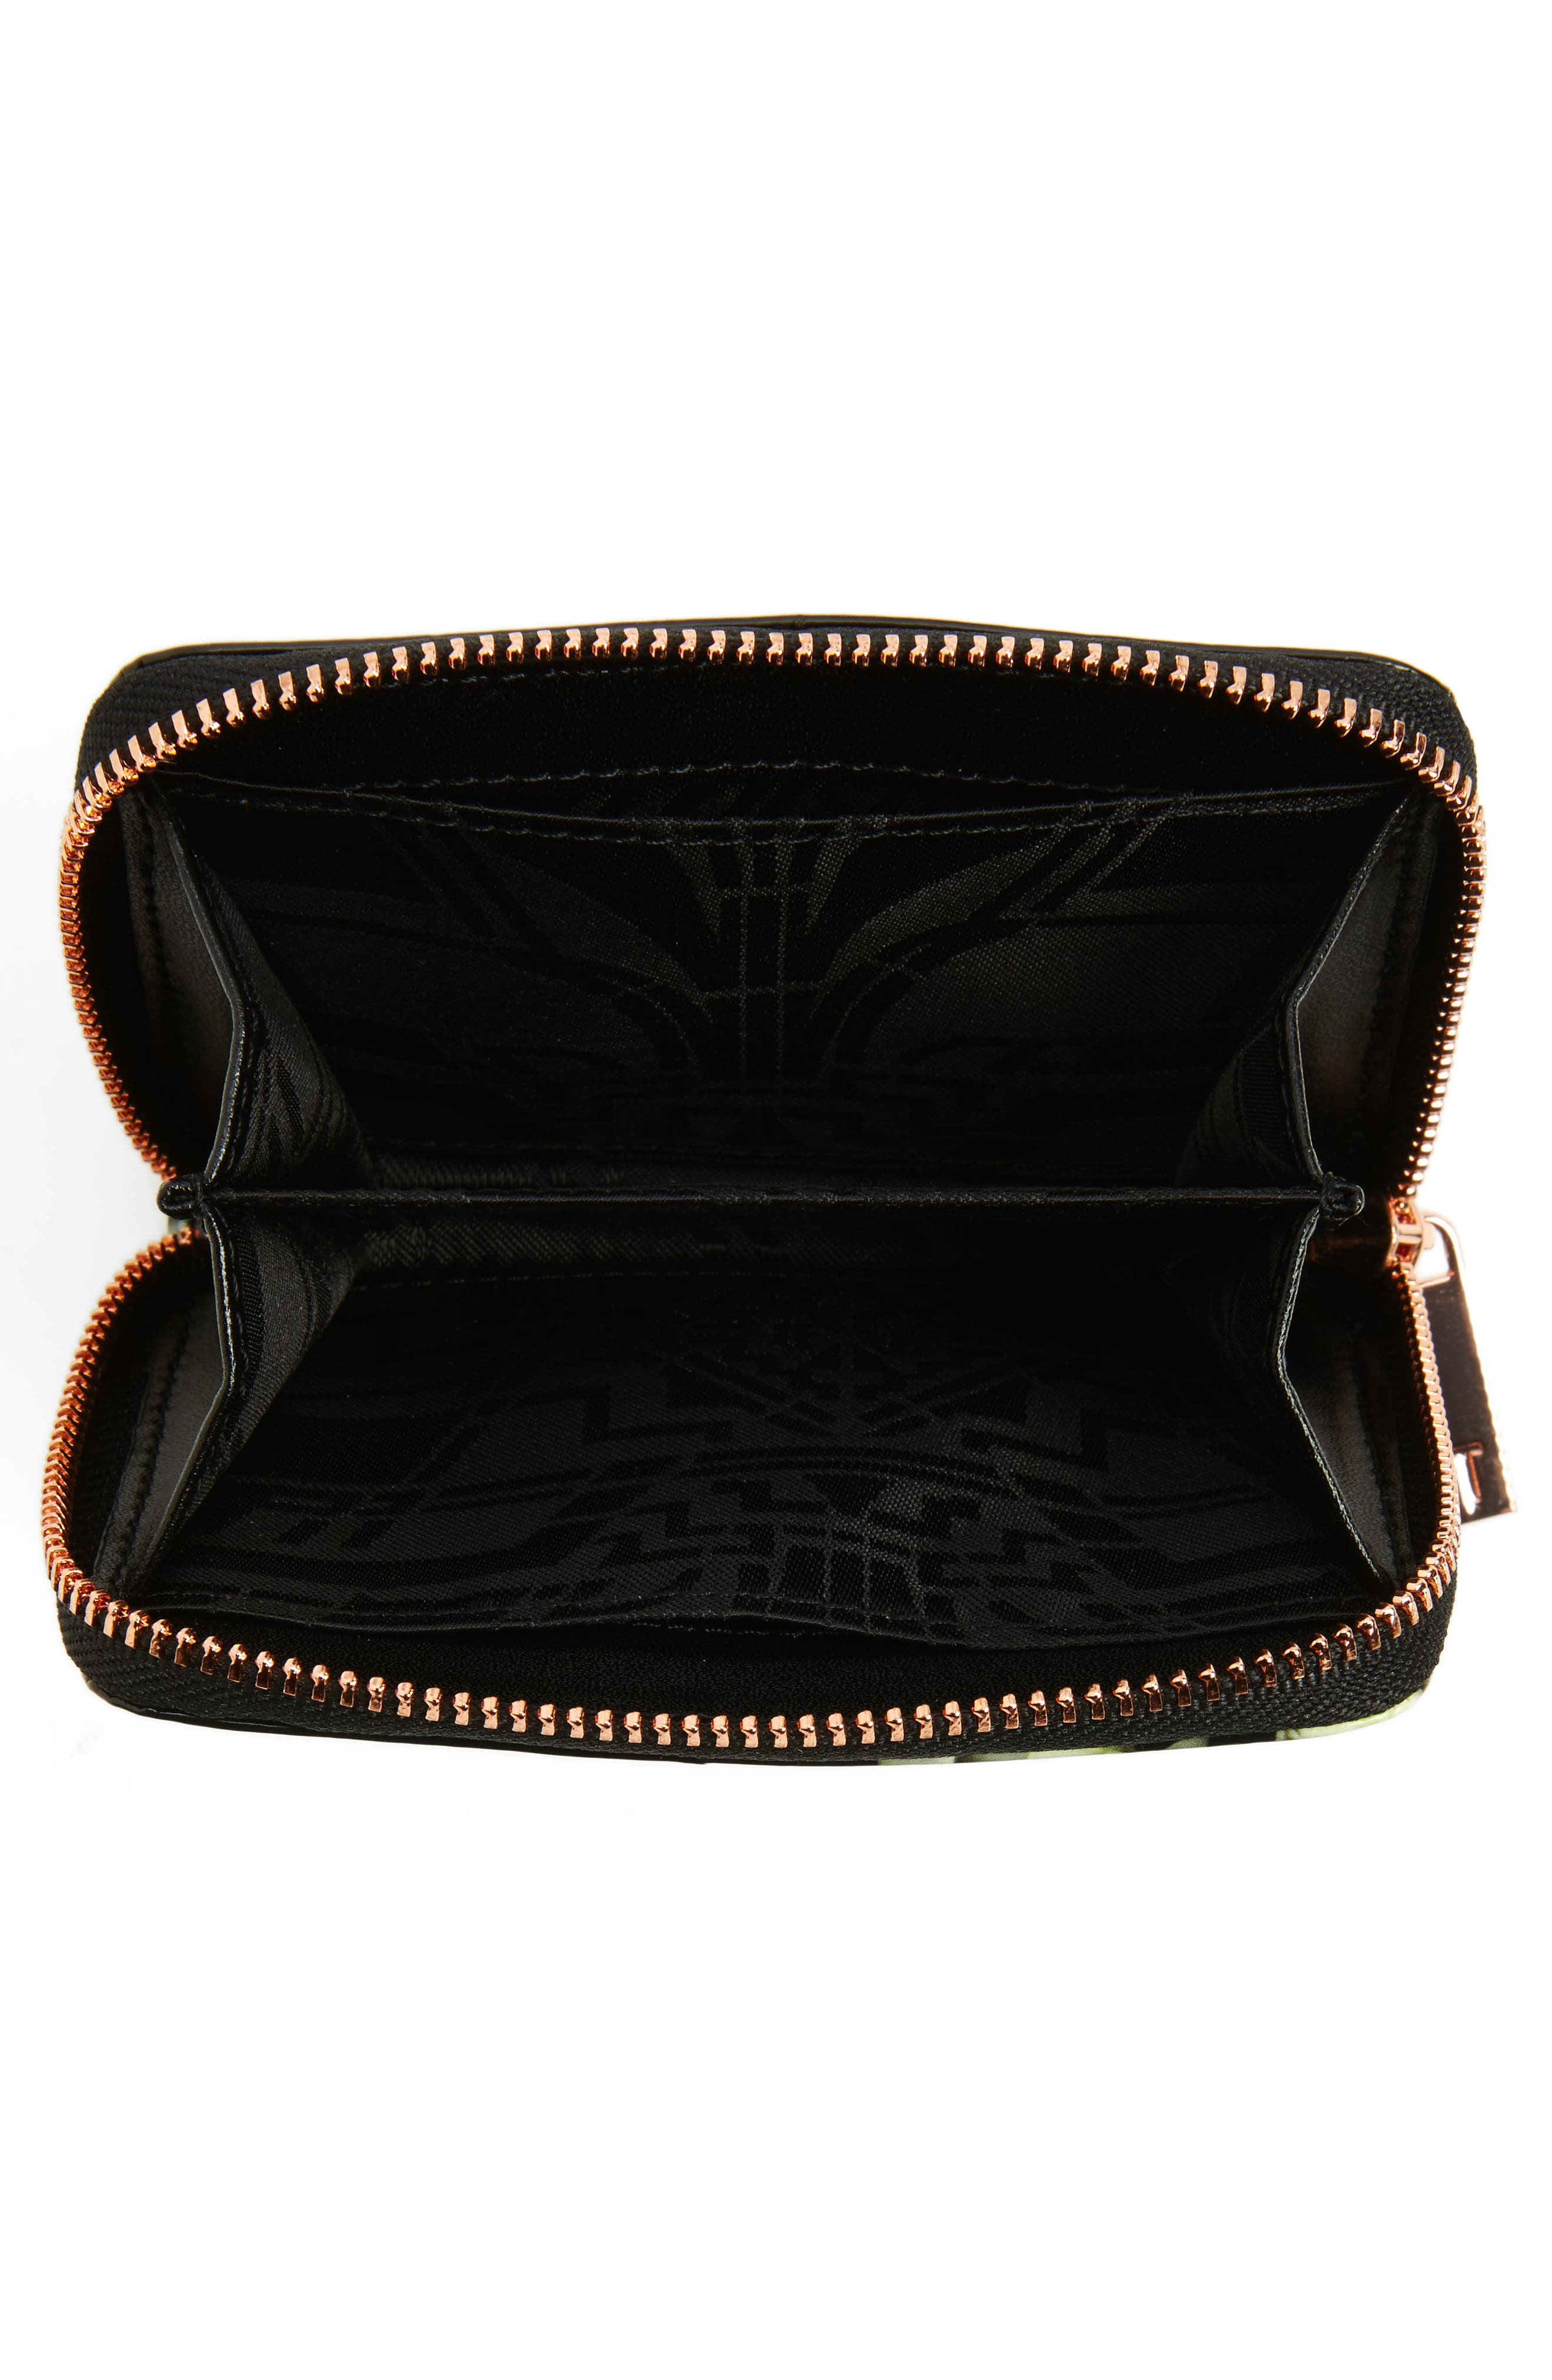 Alternate Image 3  - Ted Baker London Mayycie Kensington Floral Leather Mini Purse